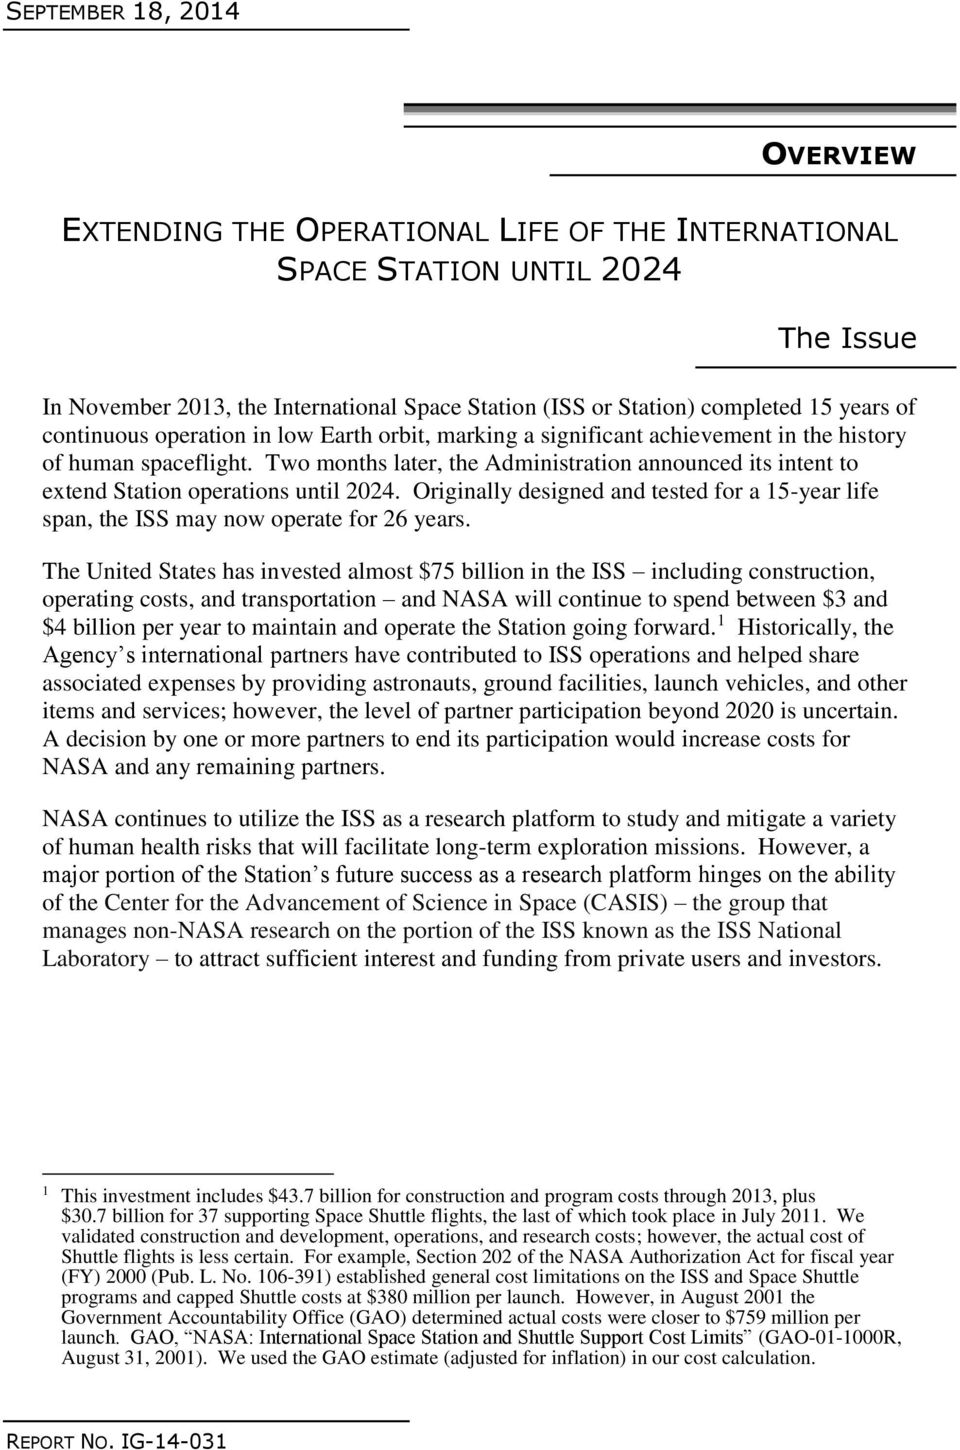 Two months later, the Administration announced its intent to extend Station operations until 2024. Originally designed and tested for a 15-year life span, the ISS may now operate for 26 years.